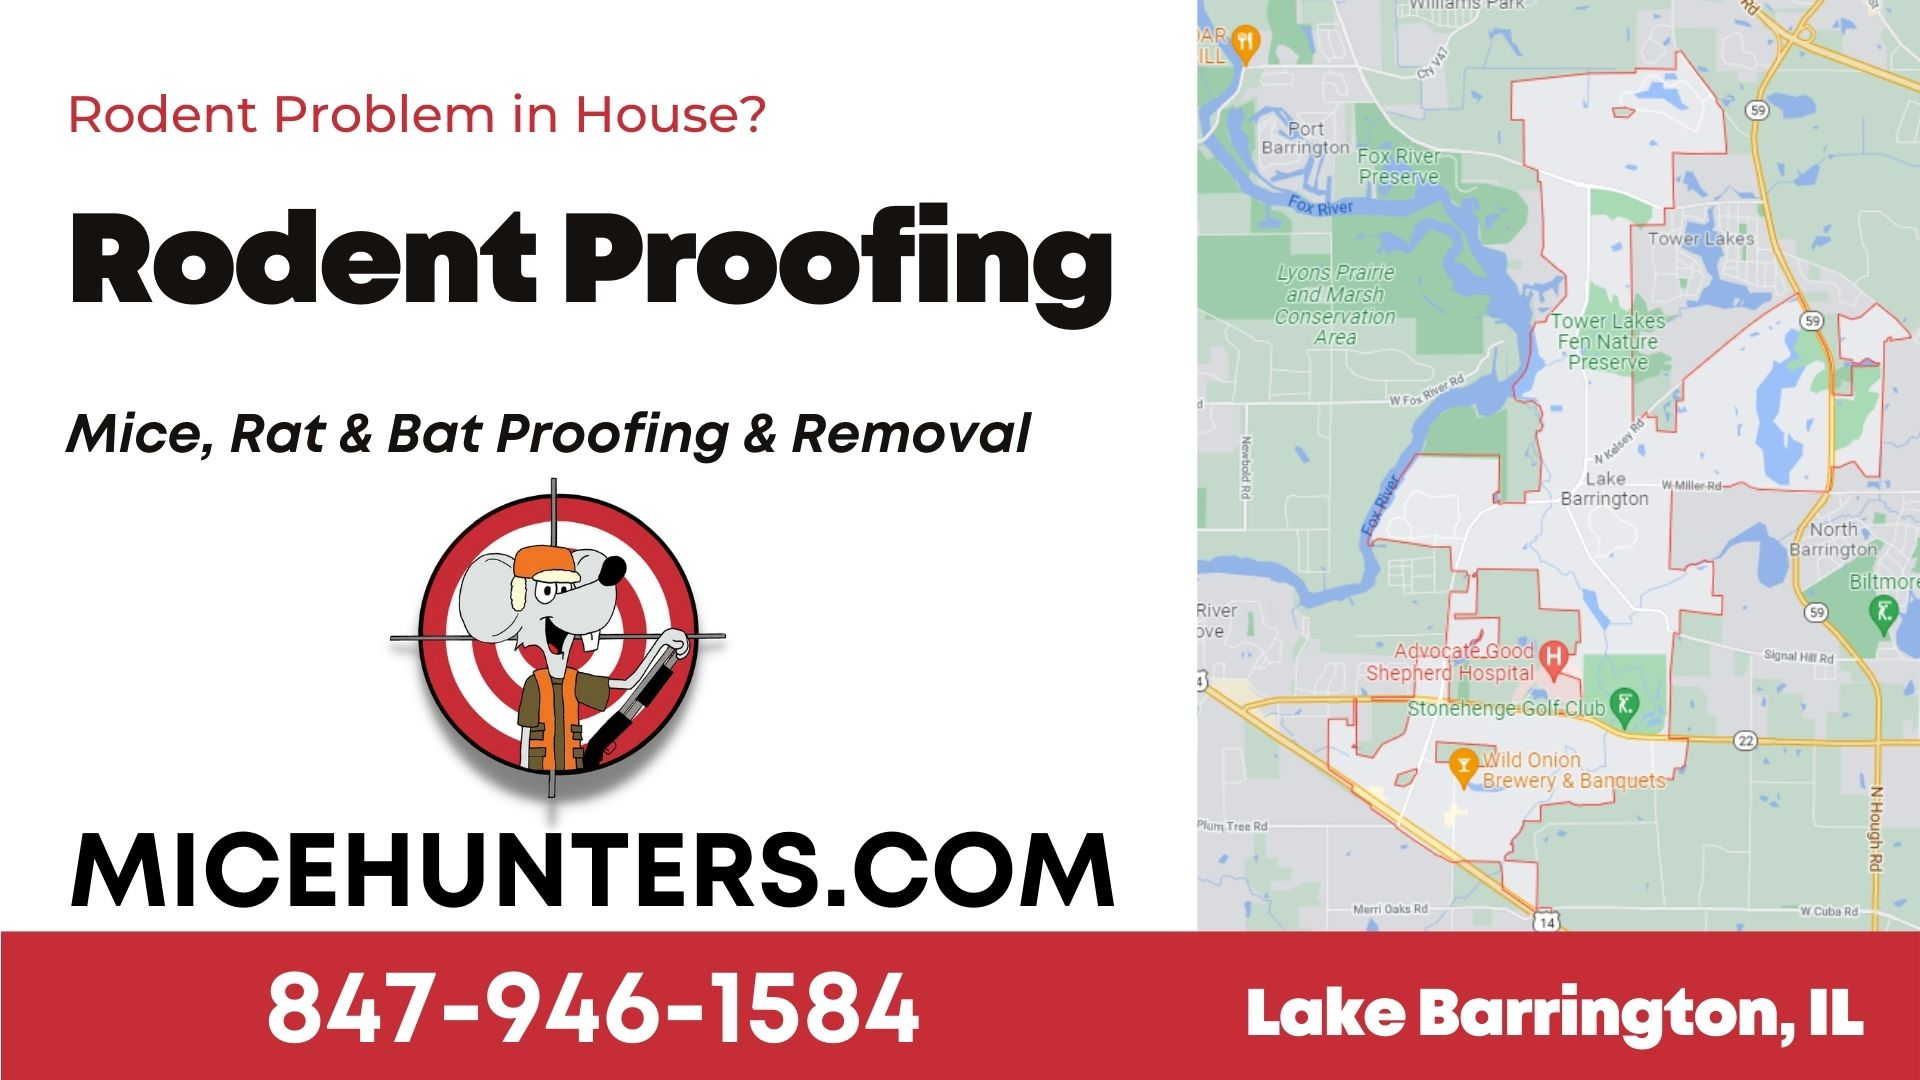 Lake Barrington Rodent and Mice Proofing Exterminator